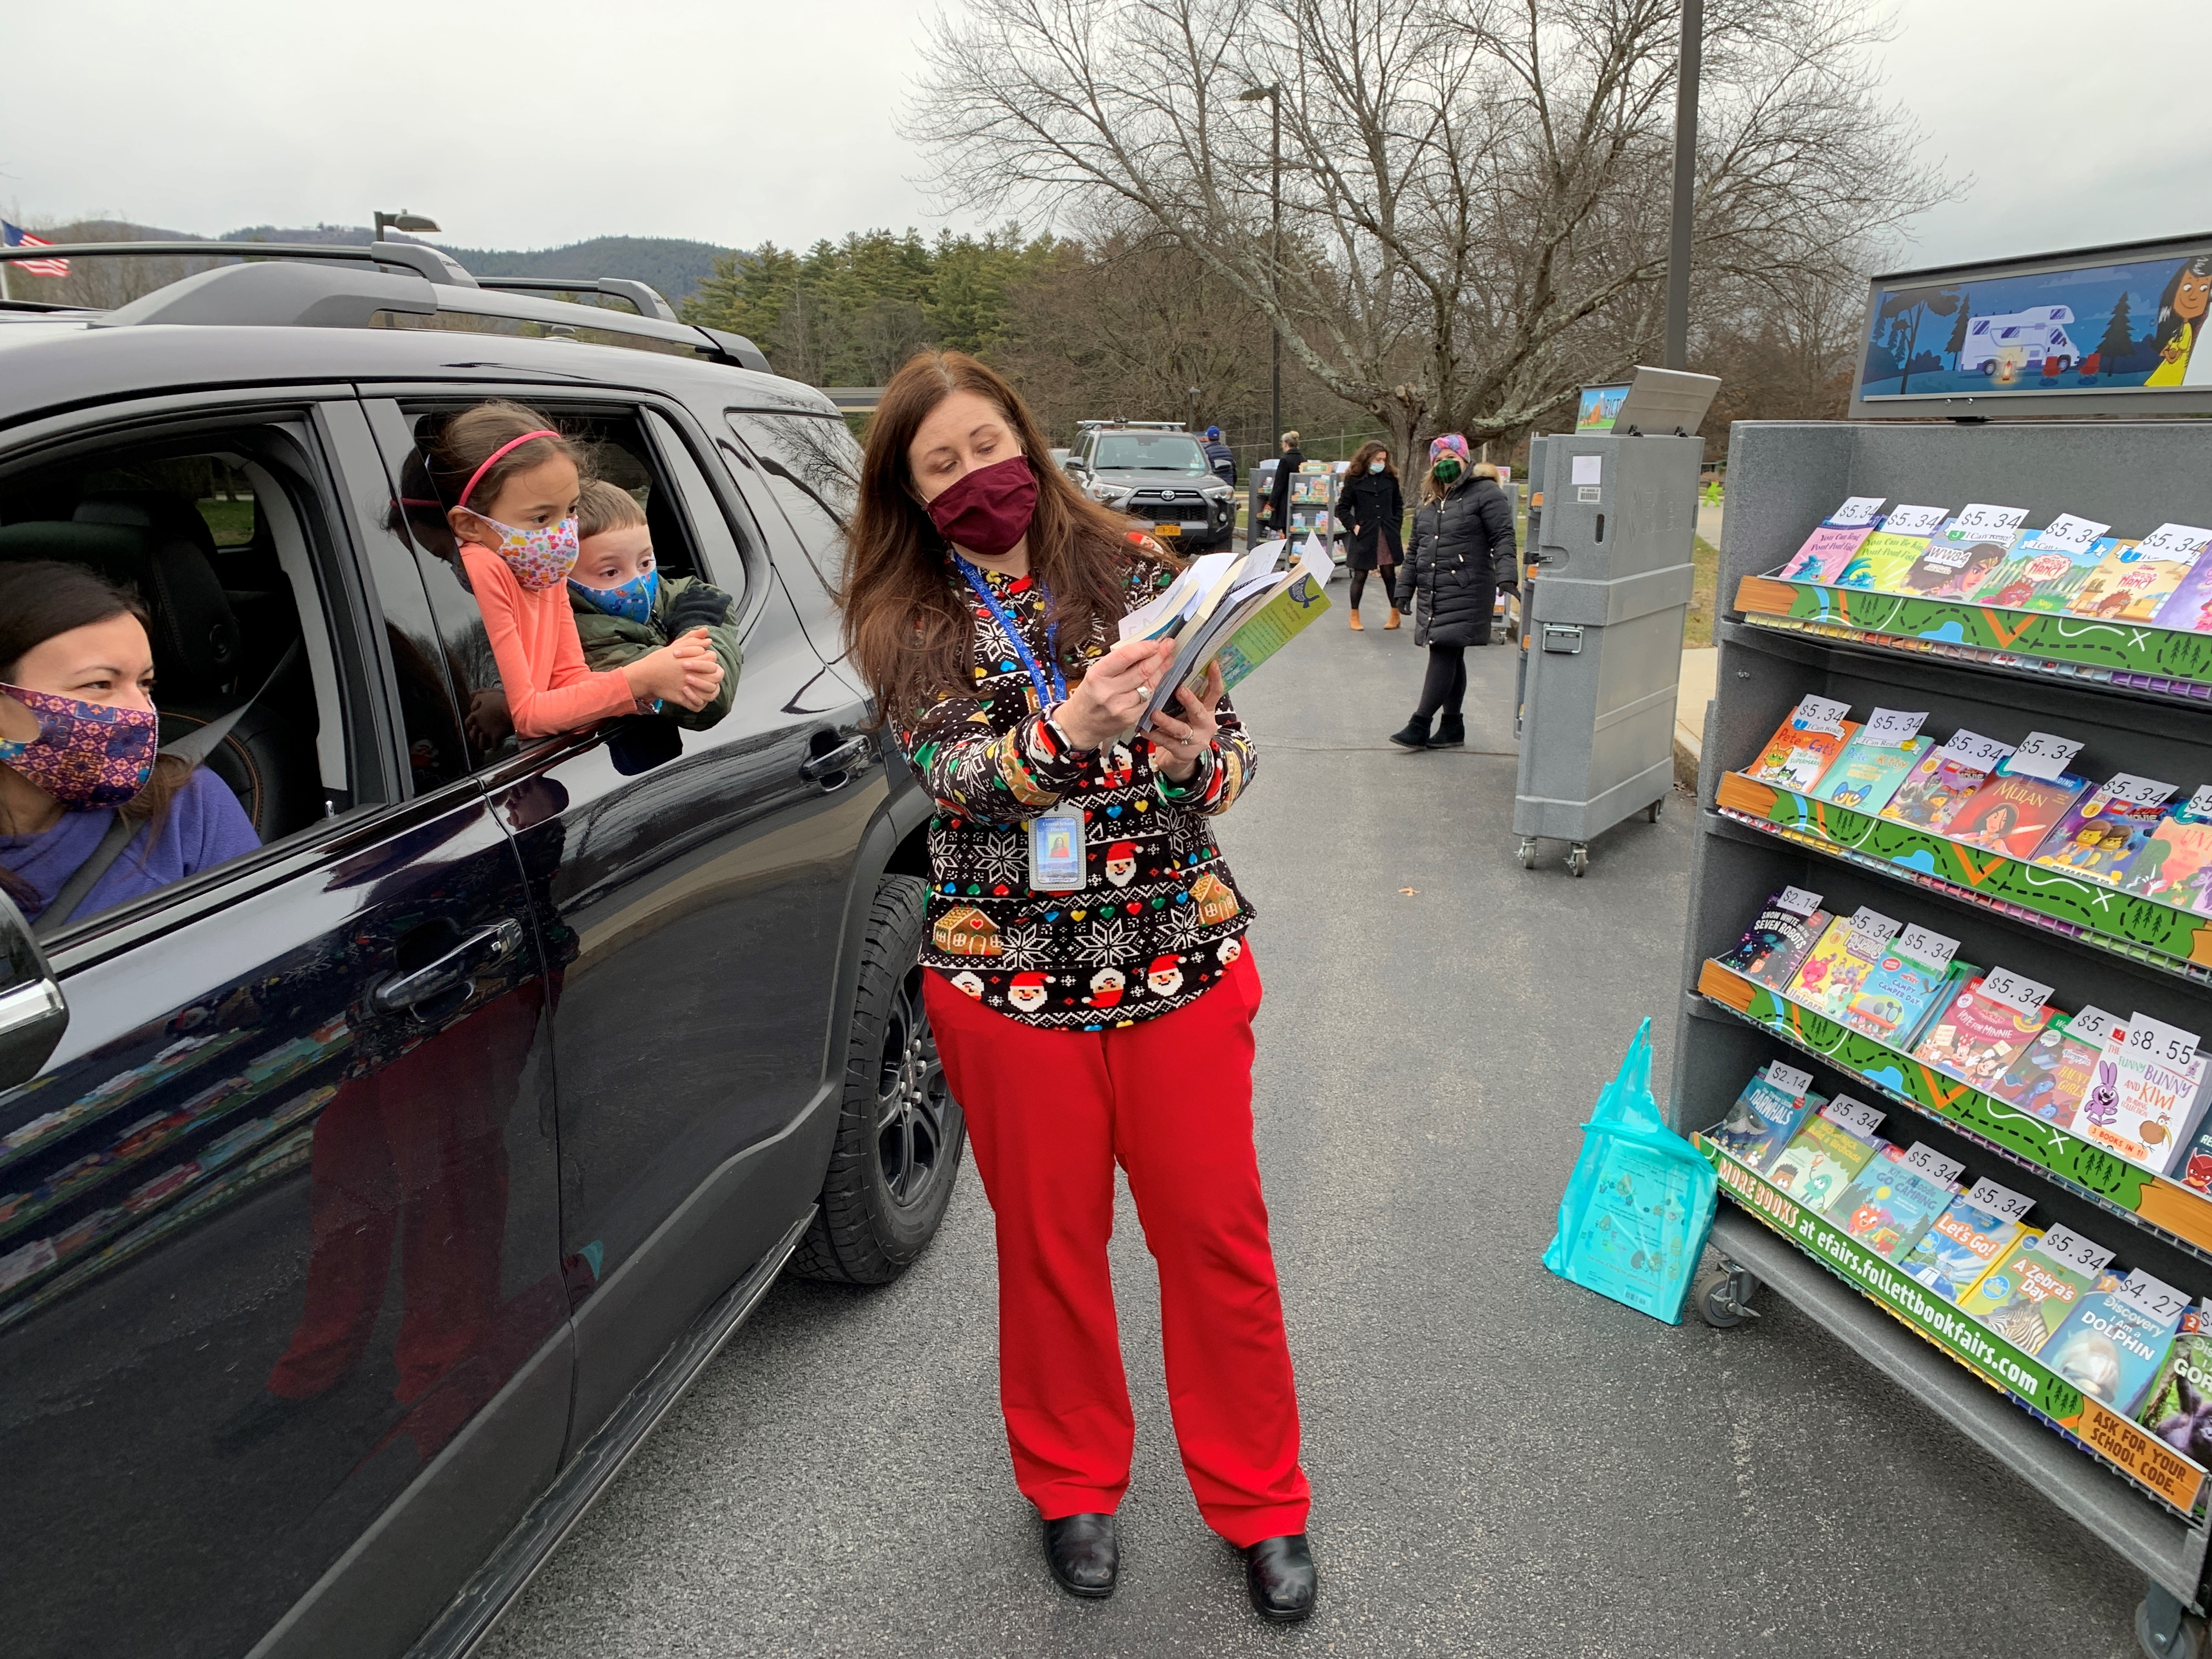 School Librarians Get Creative To Hold Book Fairs Despite Pandemic Restrictions